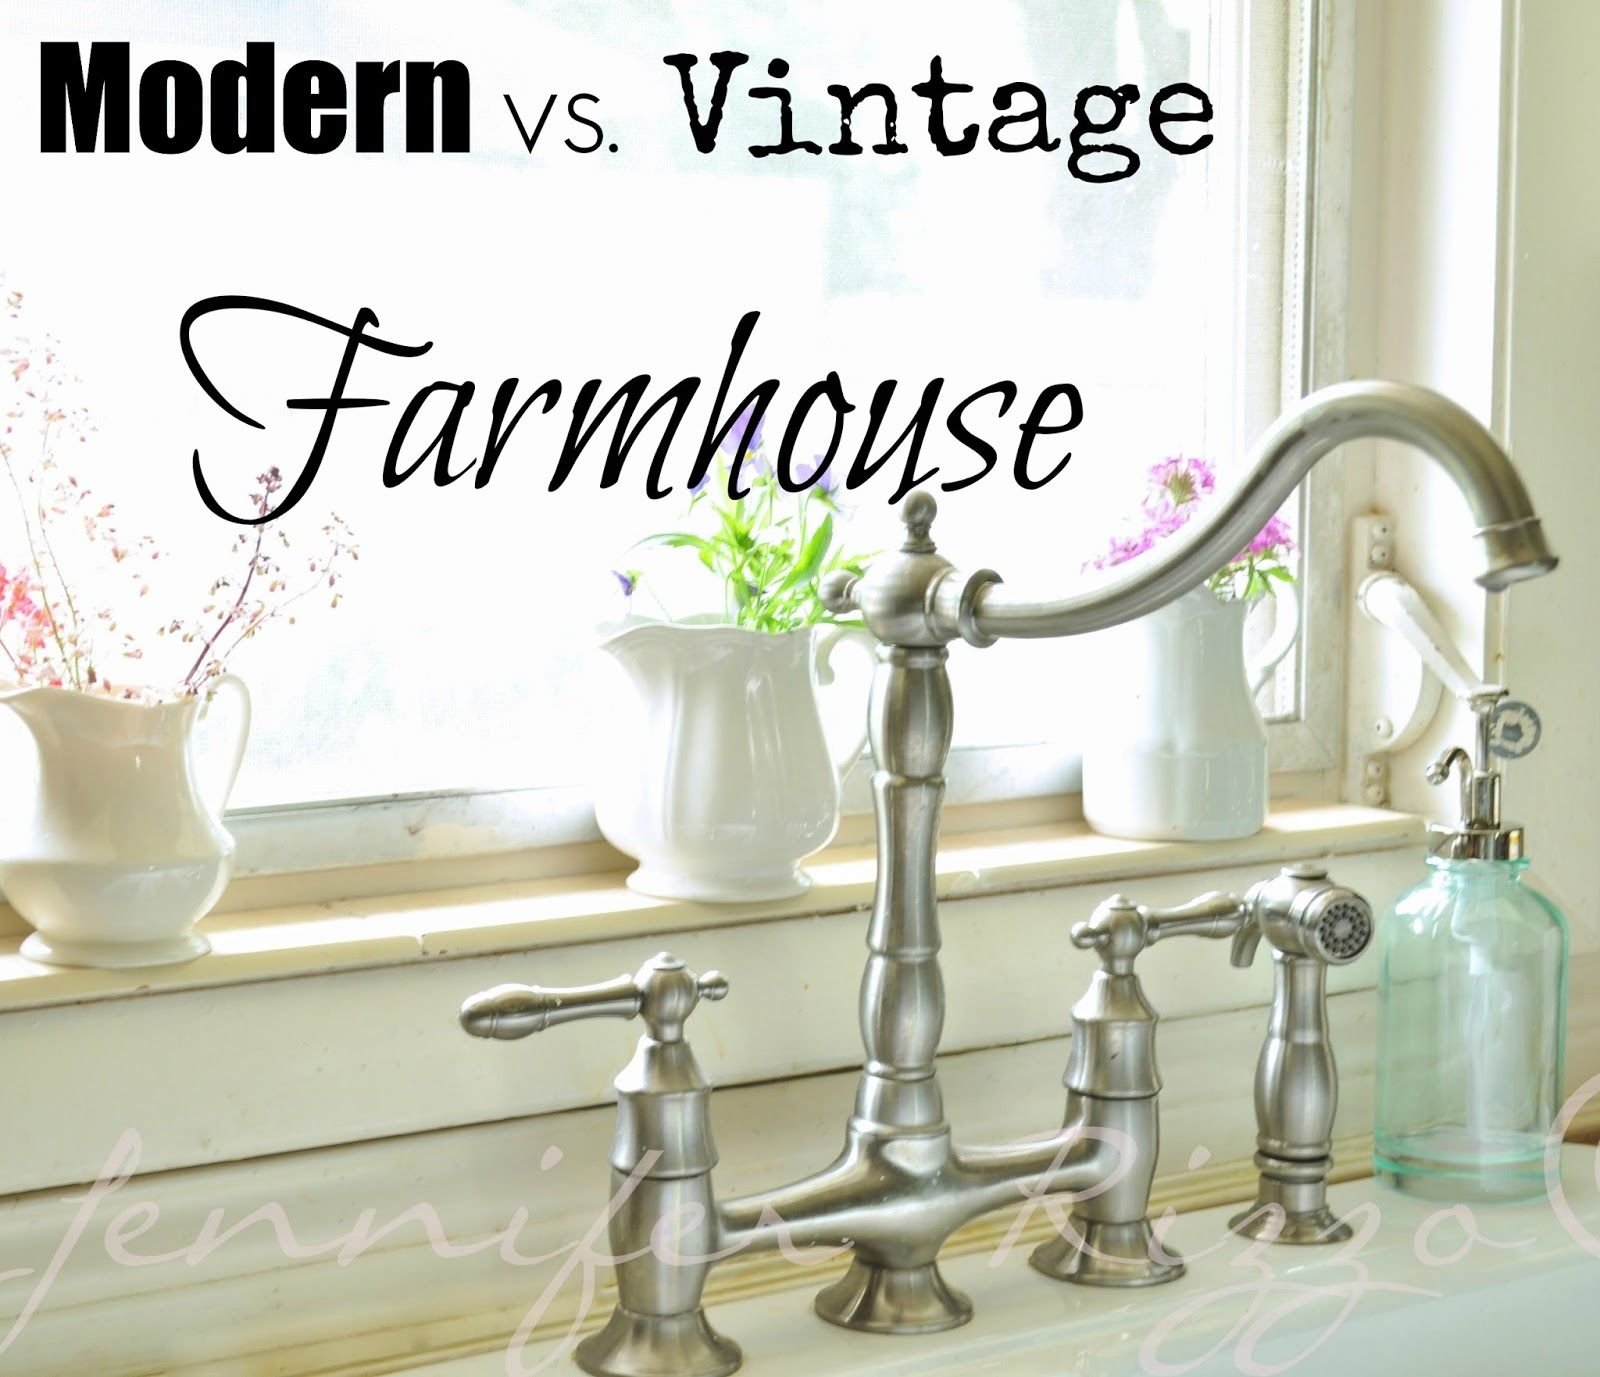 The difference between Modern vs. Vintage Farmhouse